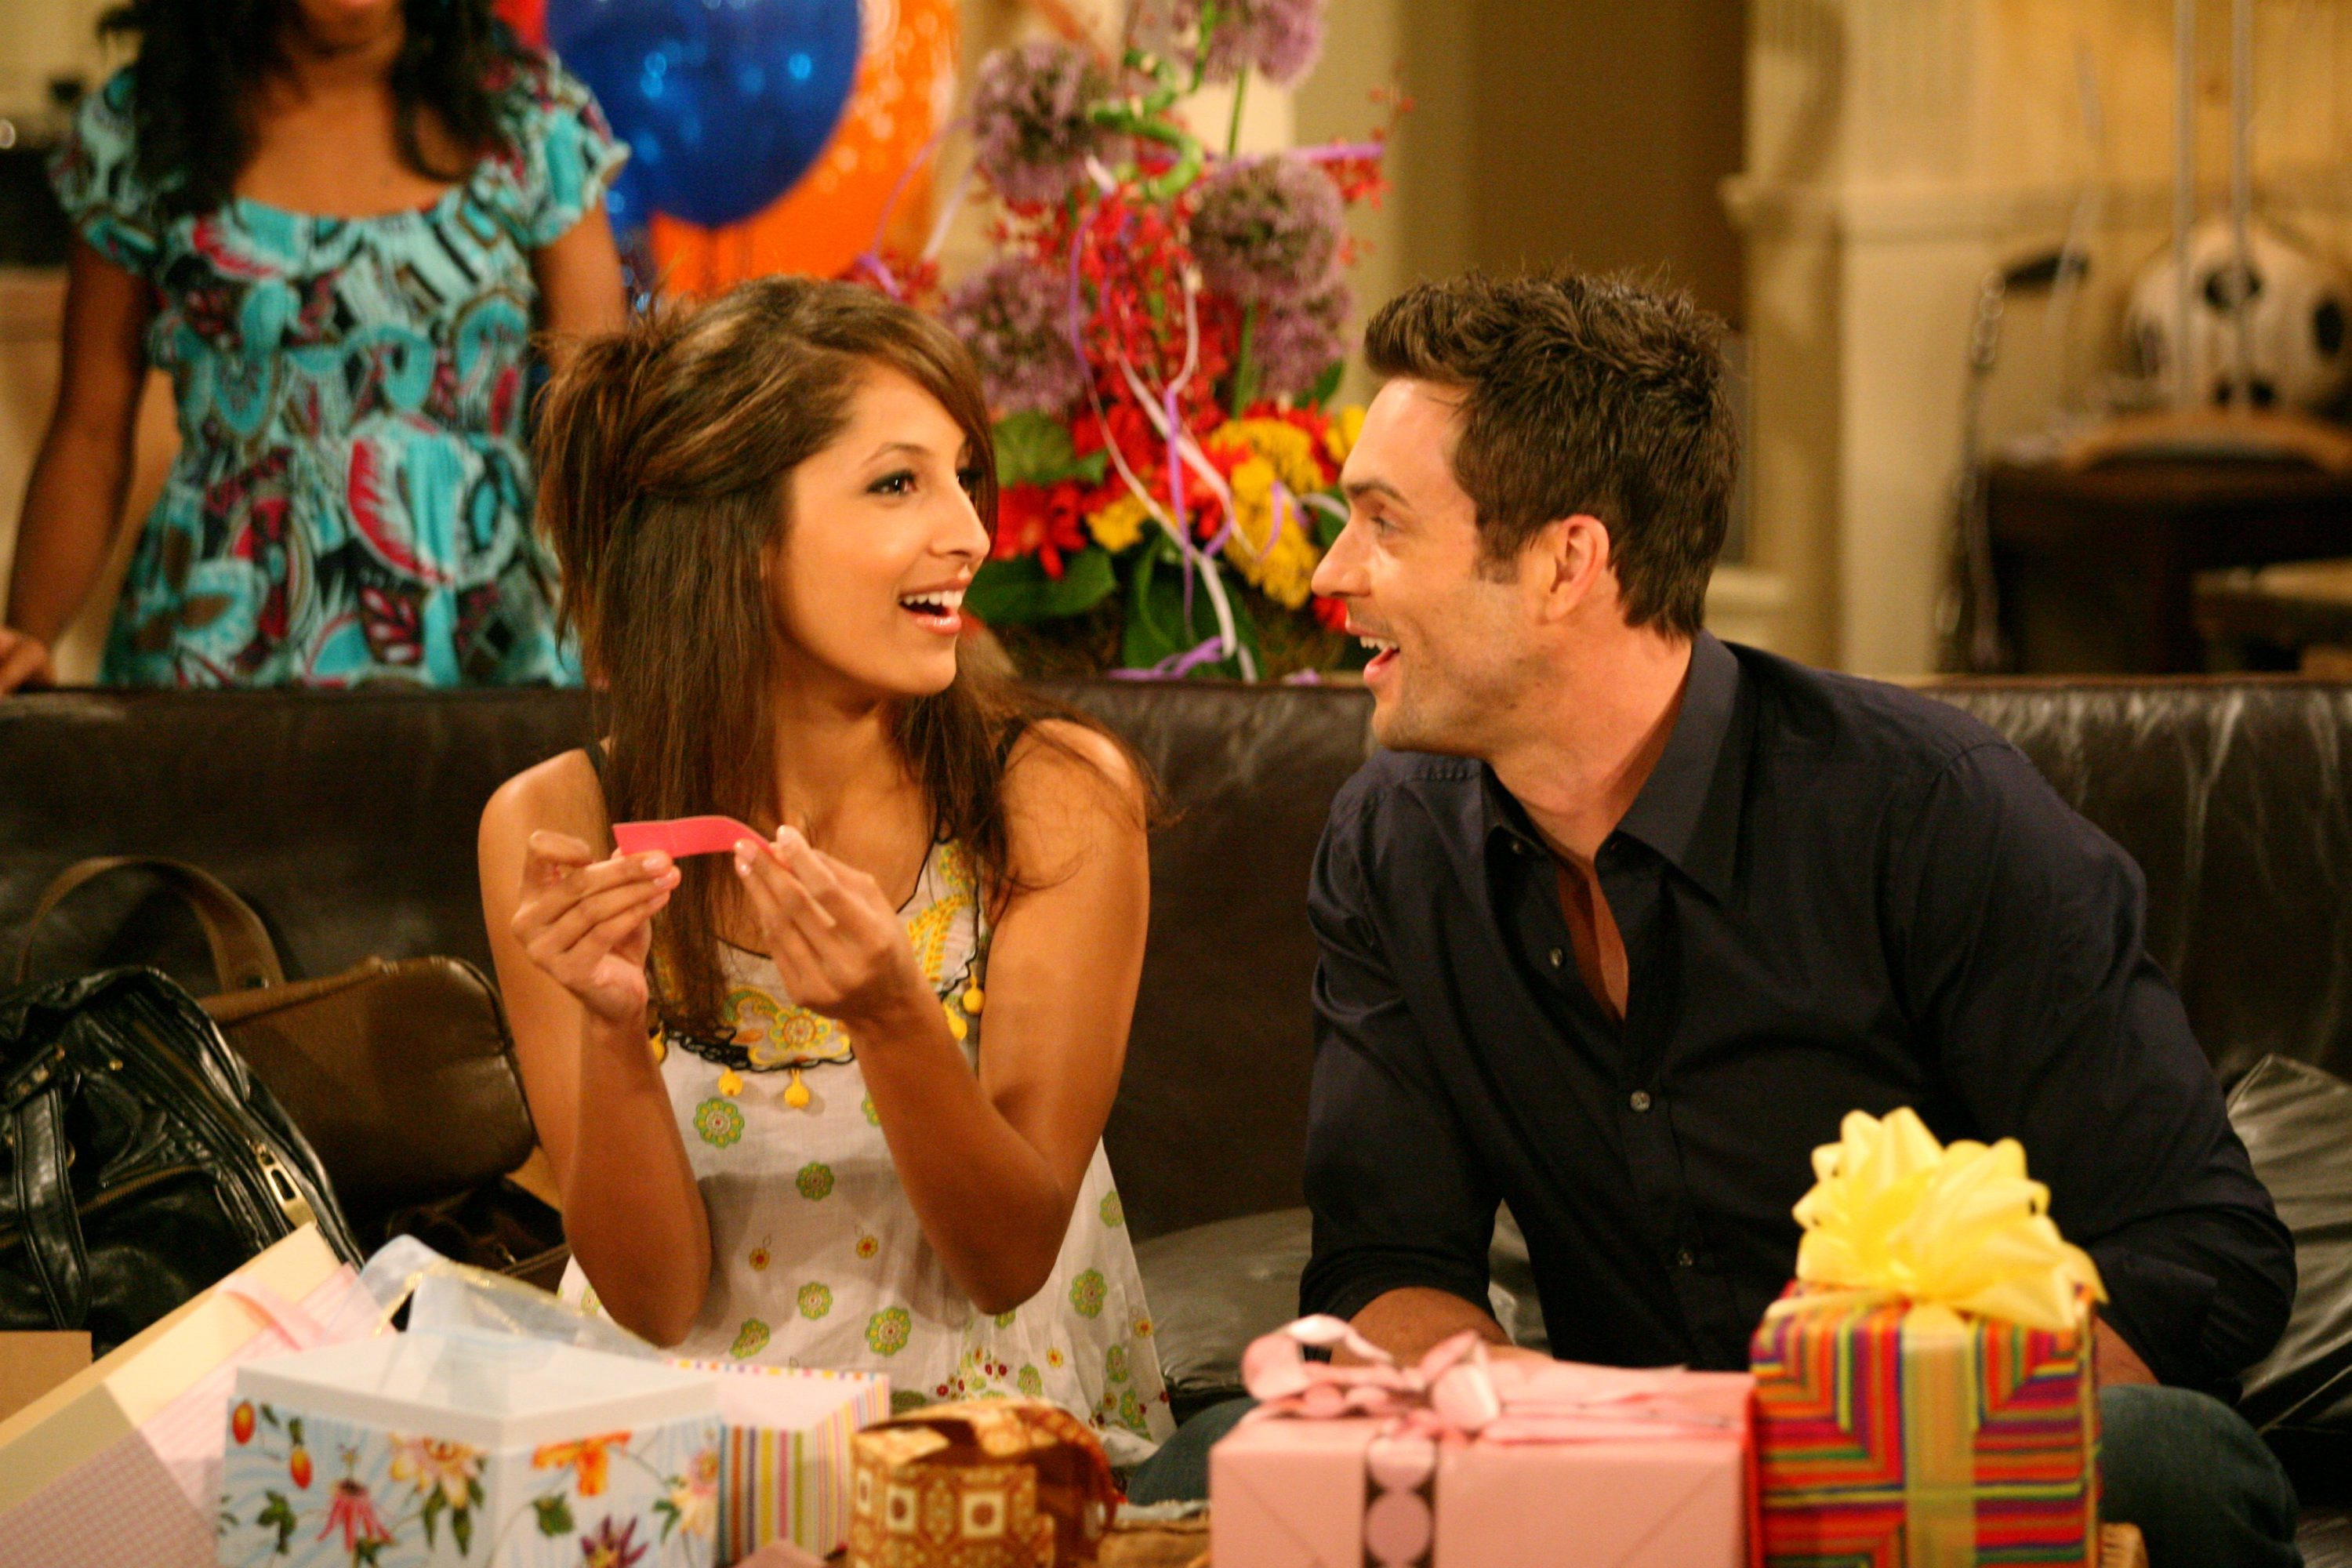 "Daniel Goddard, Christel Khalil""The Young and the Restless"" SetCBS Television CityLos Angeles6/3/08©Aaron Montgomery/jpistudios.com310-657-9661Episode #8923air date 6/26/08"